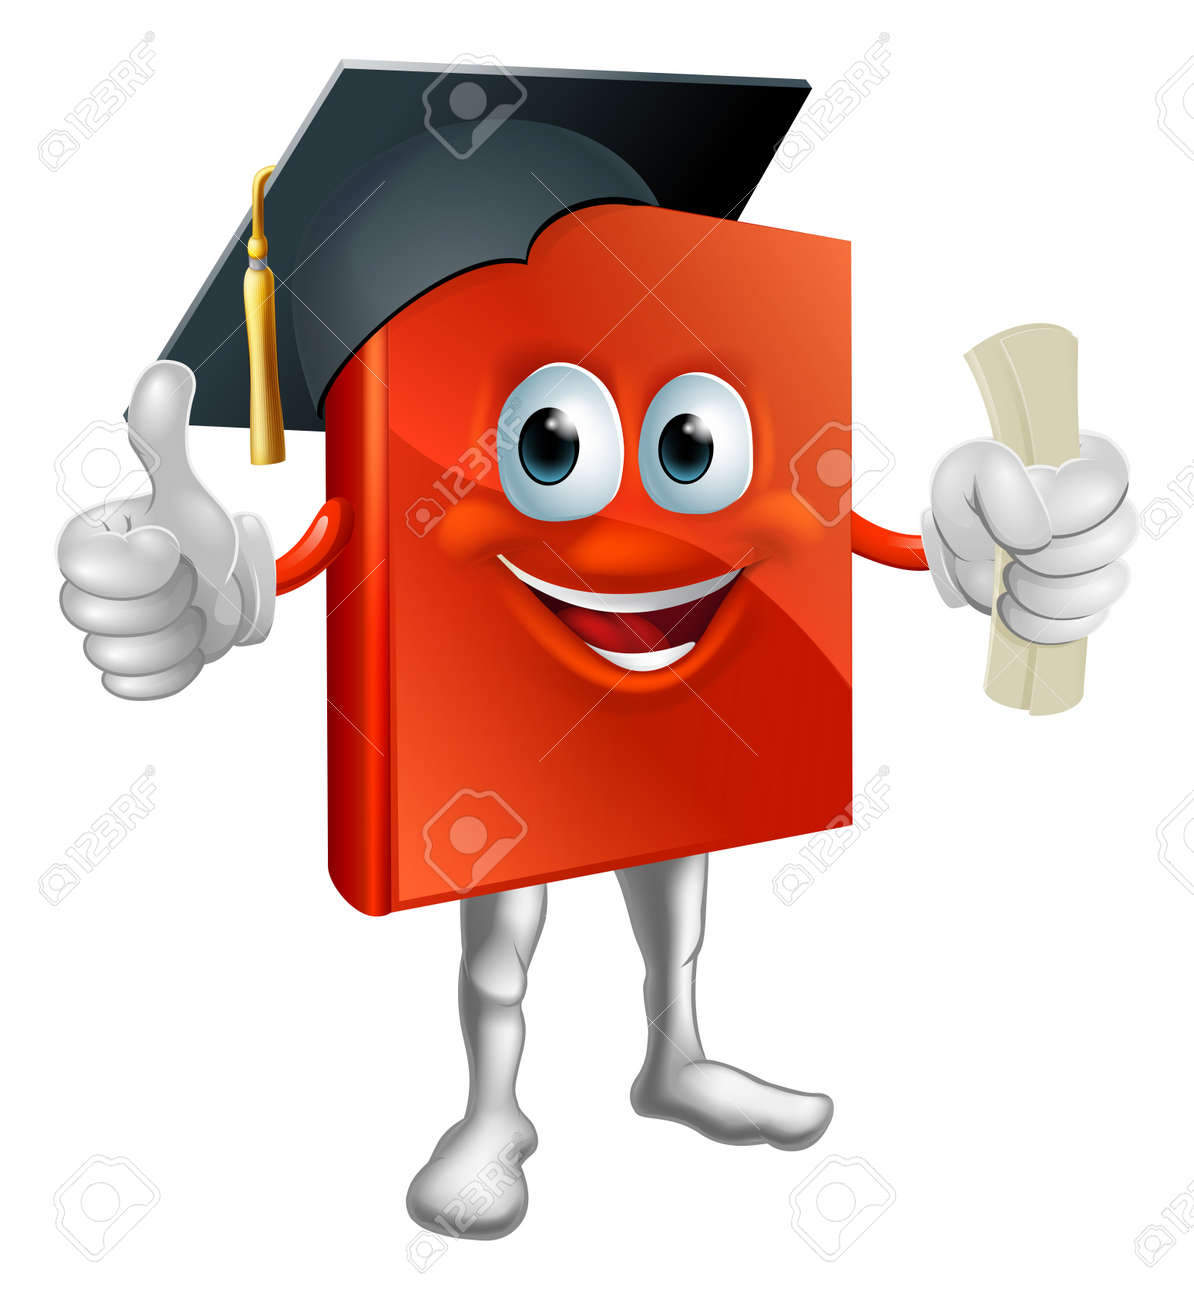 Cartoon graduation book education mascot giving thumbs up, wearing mortarboard hat and holding a diploma. Stock Vector - 17819182